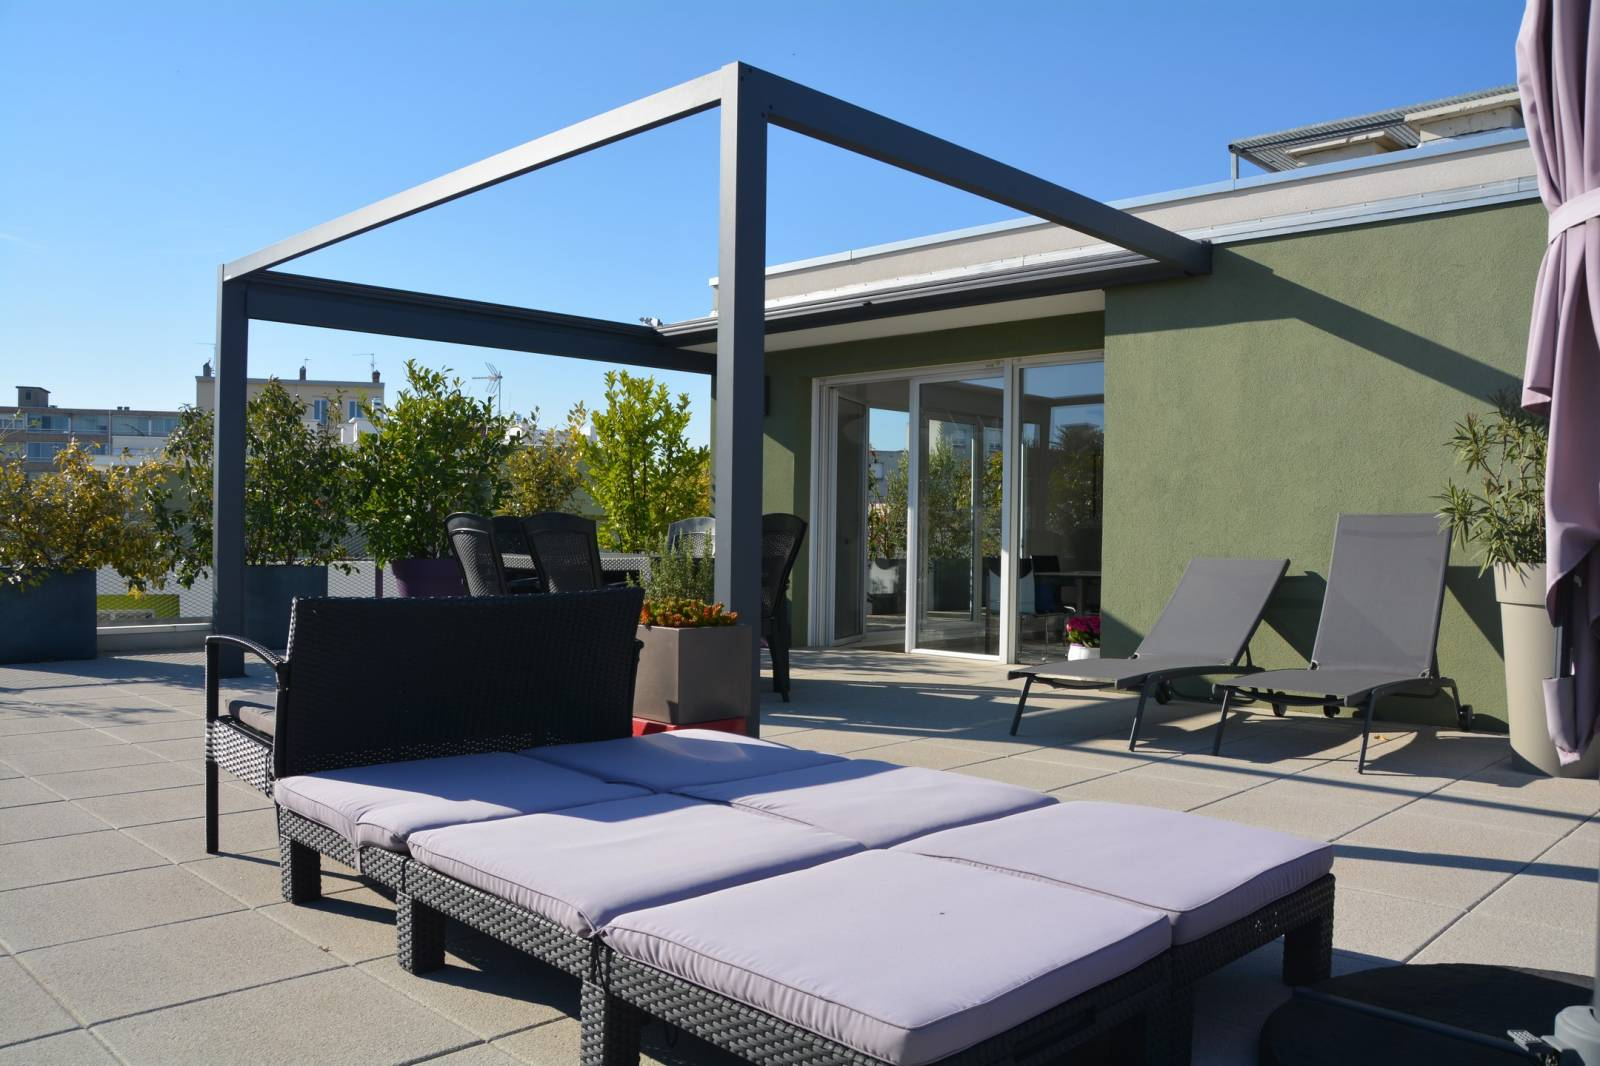 pergola toile retractable sur toit terrasse lyon perspective v randa. Black Bedroom Furniture Sets. Home Design Ideas